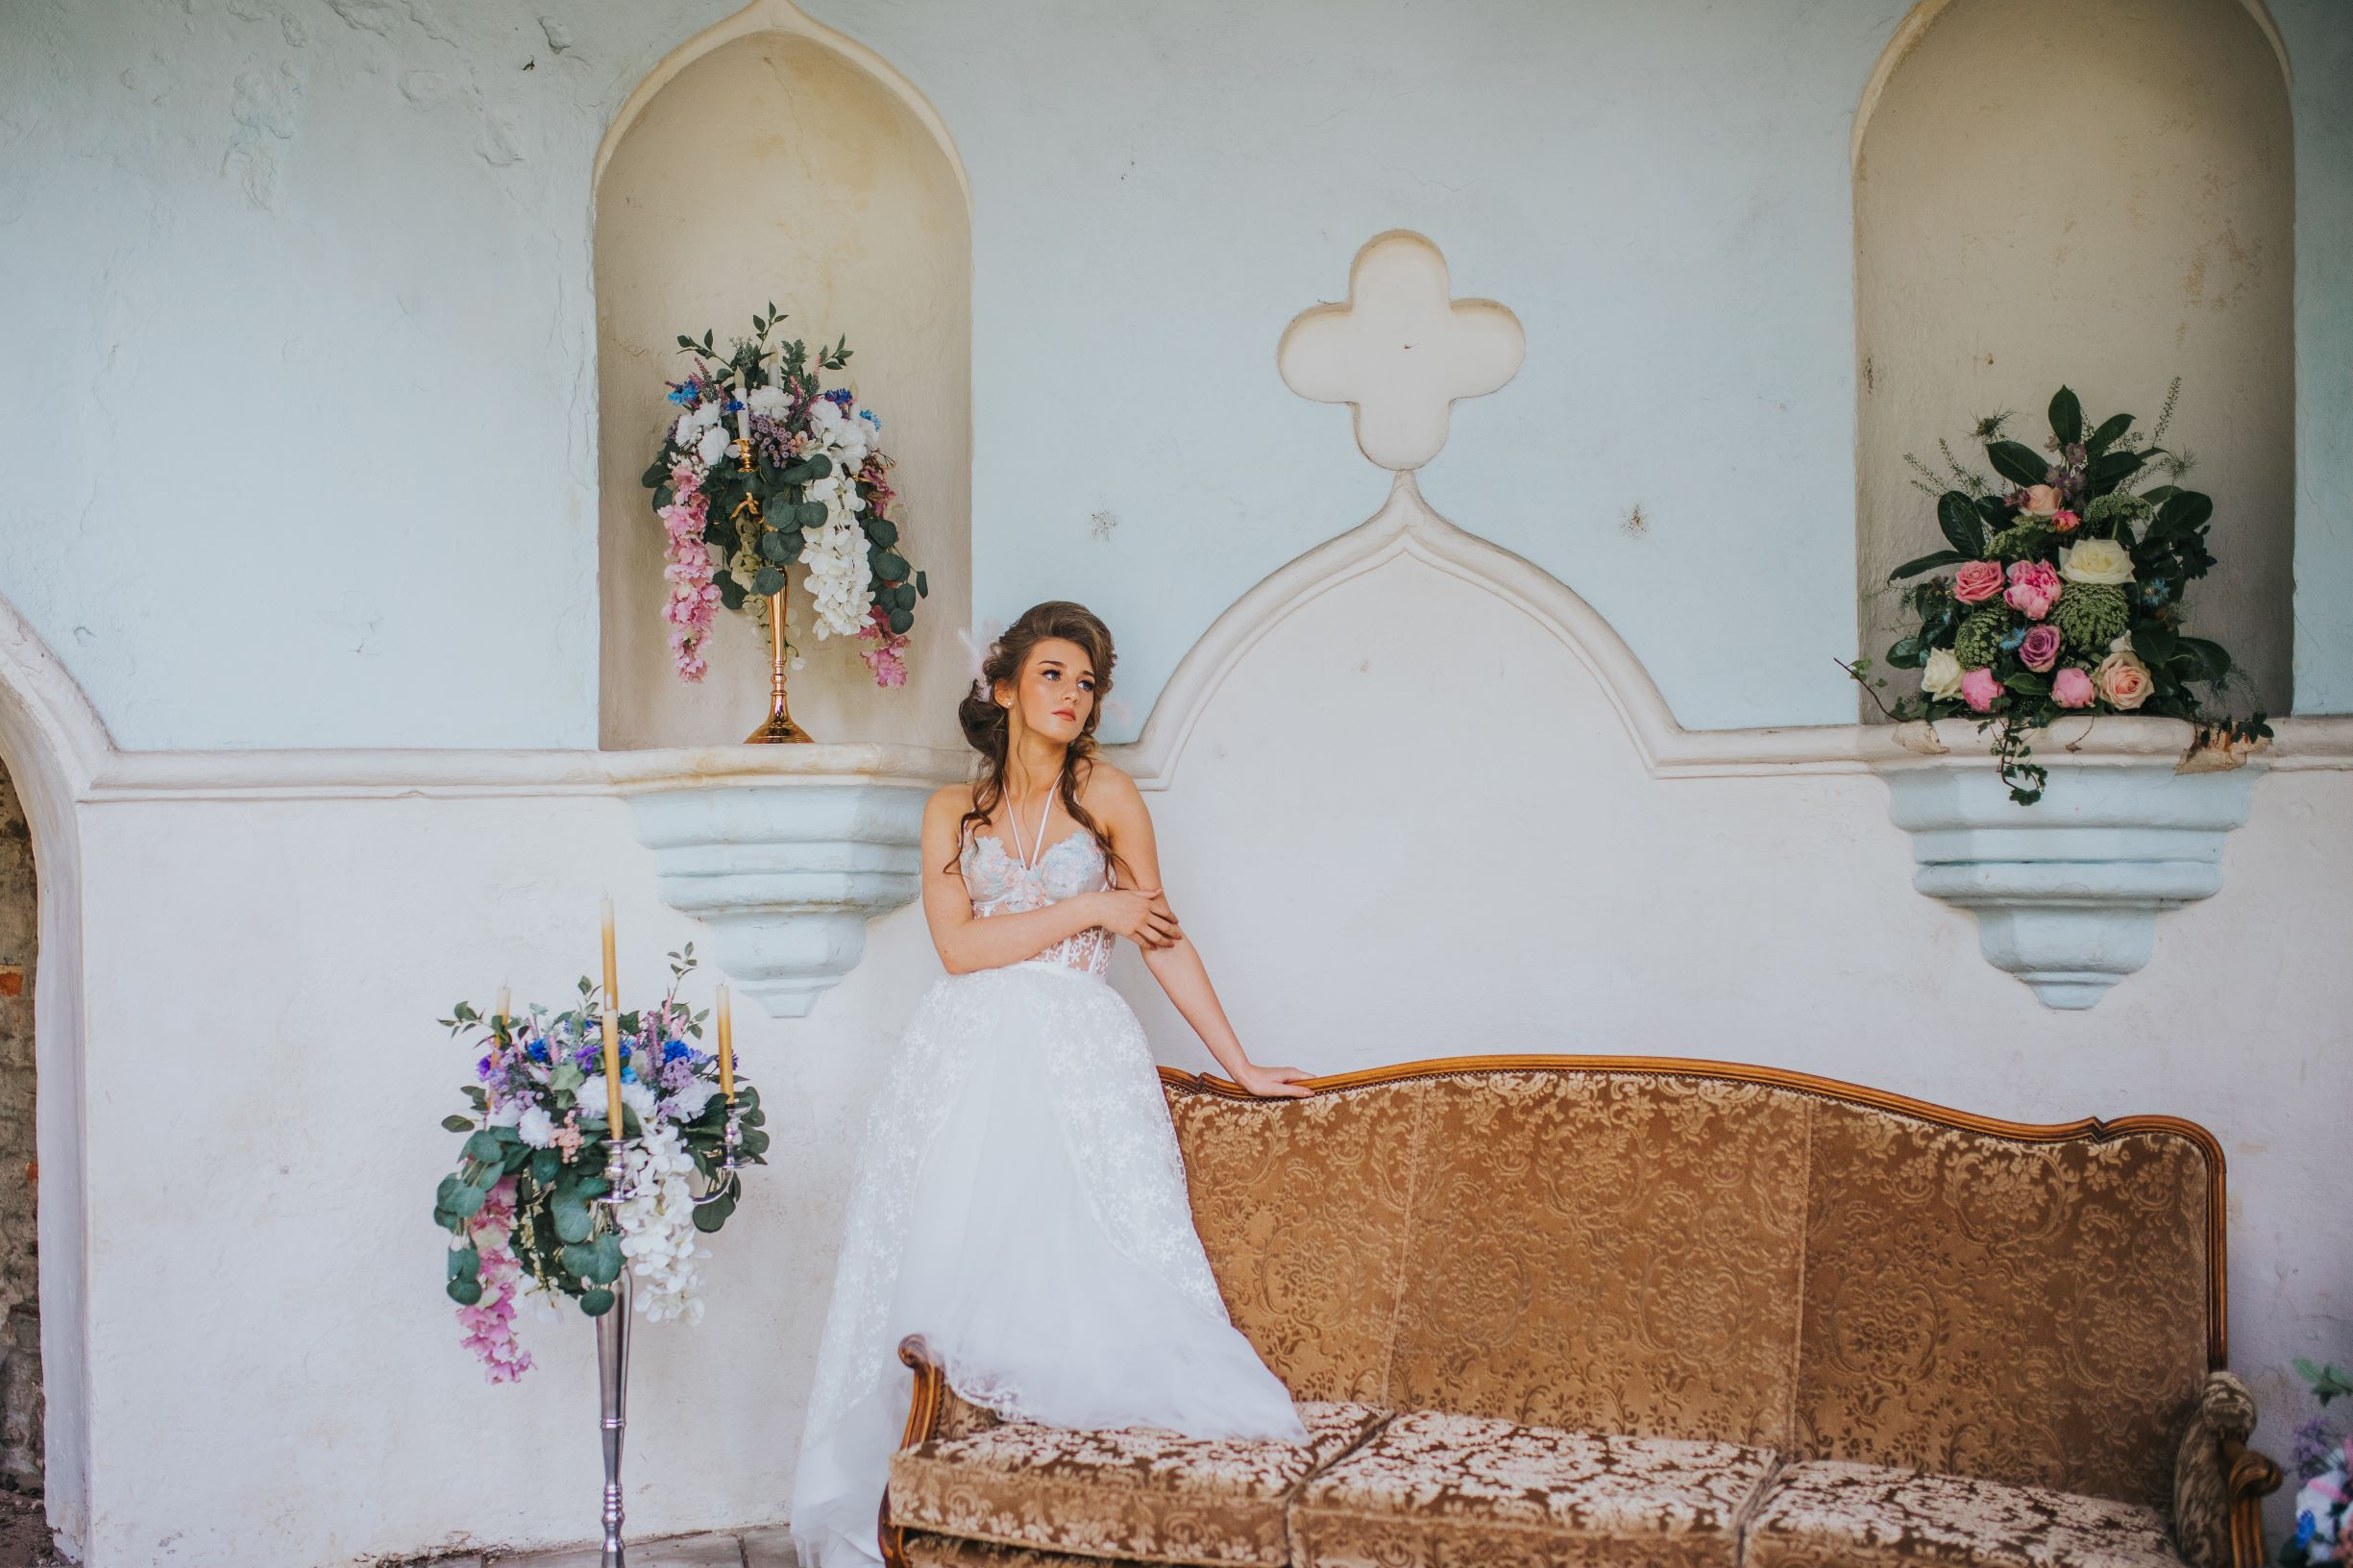 whimsical wedding- pastel wedding- laura beresford photography- unique bridalwear- alternative bridalwear- versailles wedding